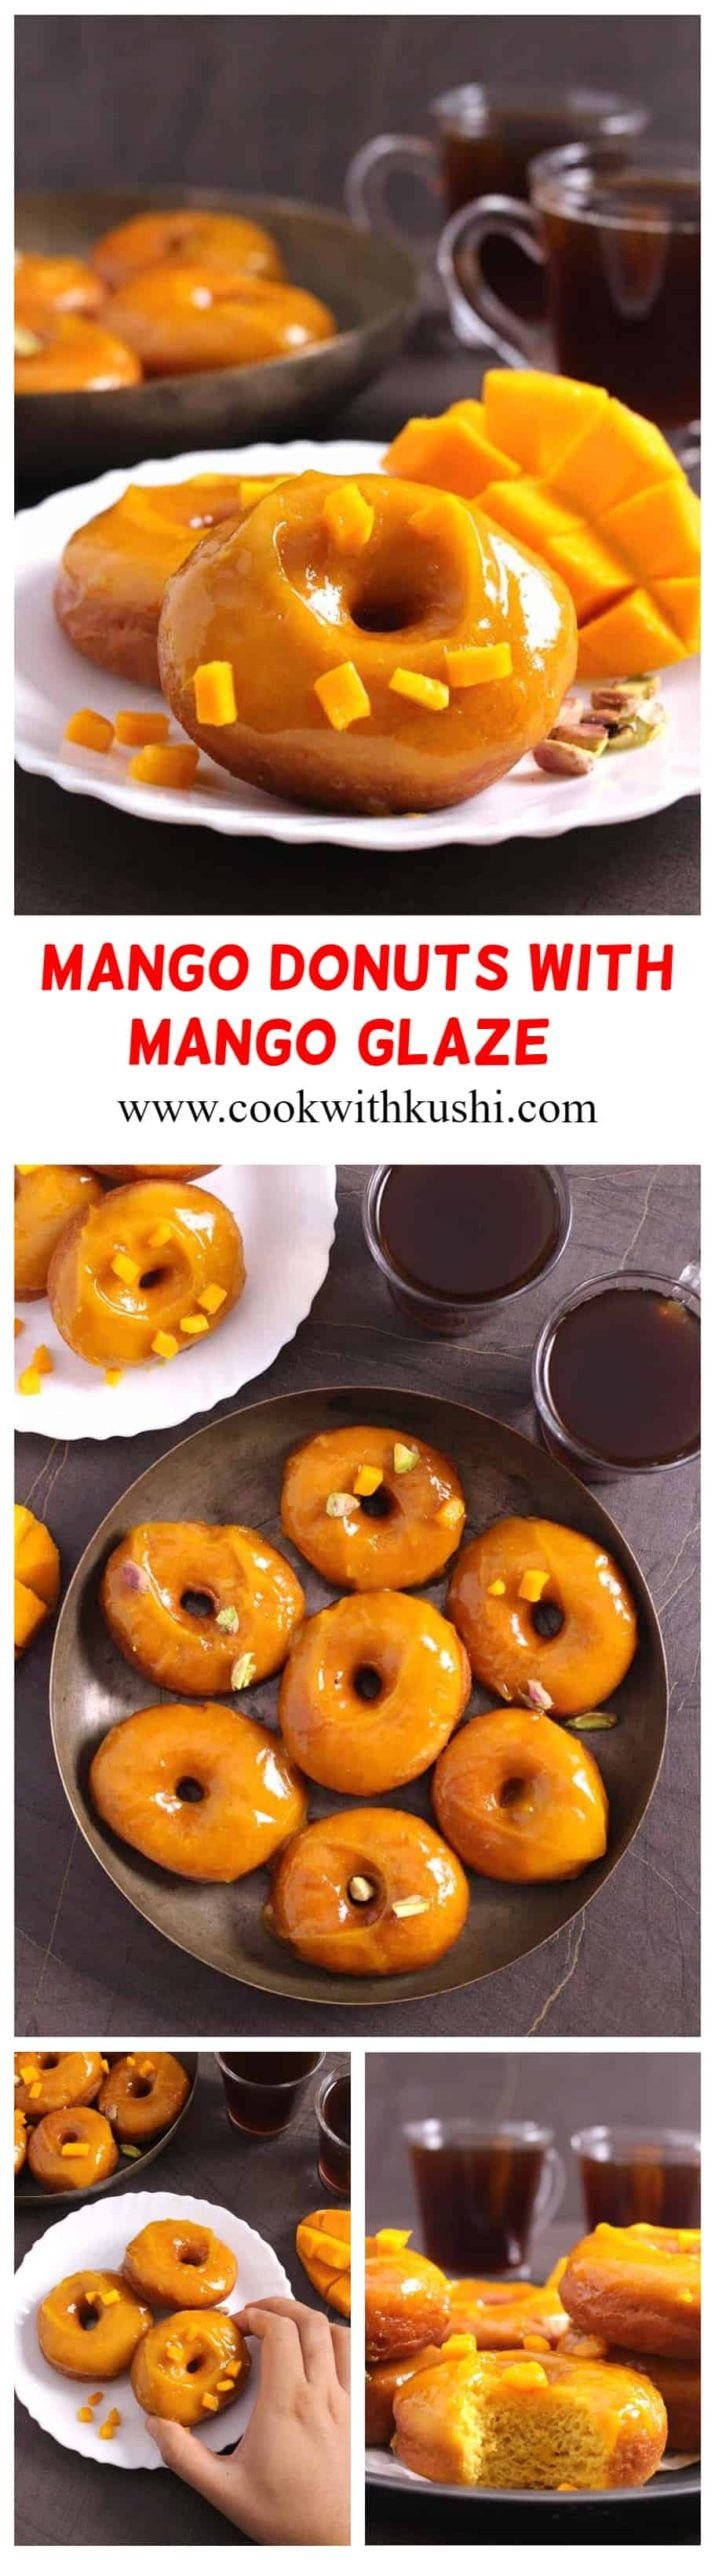 Mango Doughnuts (Donuts) with Mango Glaze are soft, moist and fluffy bursting with full of flavor from mangoes which is again then dipped in aromatic mango glaze . A double treat for all mango lovers!!! #doughnuts #donuts #glazeddonuts #vegandonuts #Homemade #baked #airfryer #frieddough #mangoes #Mnagorecipes #breakfast #desserts #food